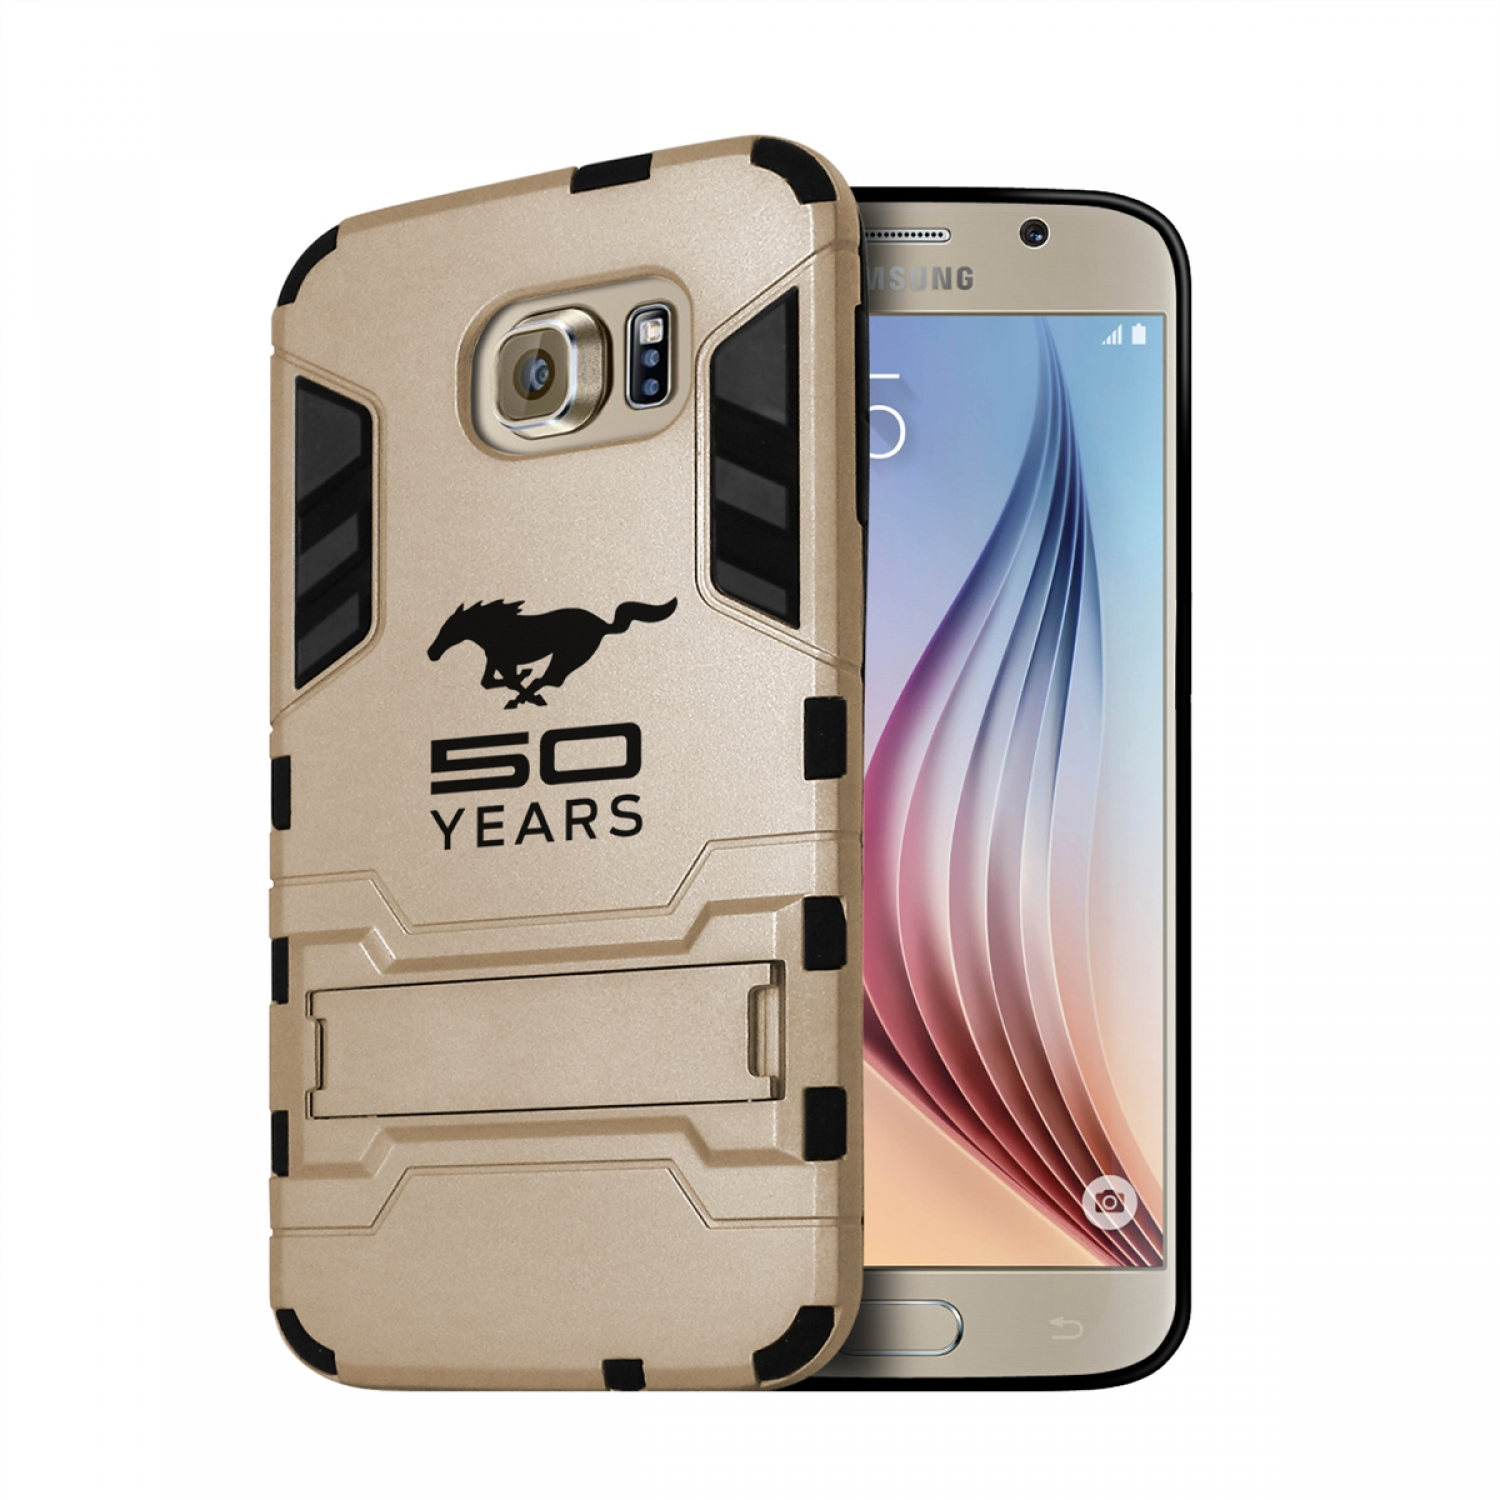 Ford Mustang 50 Years Samsung Galaxy S6 Shockproof TPU ABS Hybrid Golden Phone Case